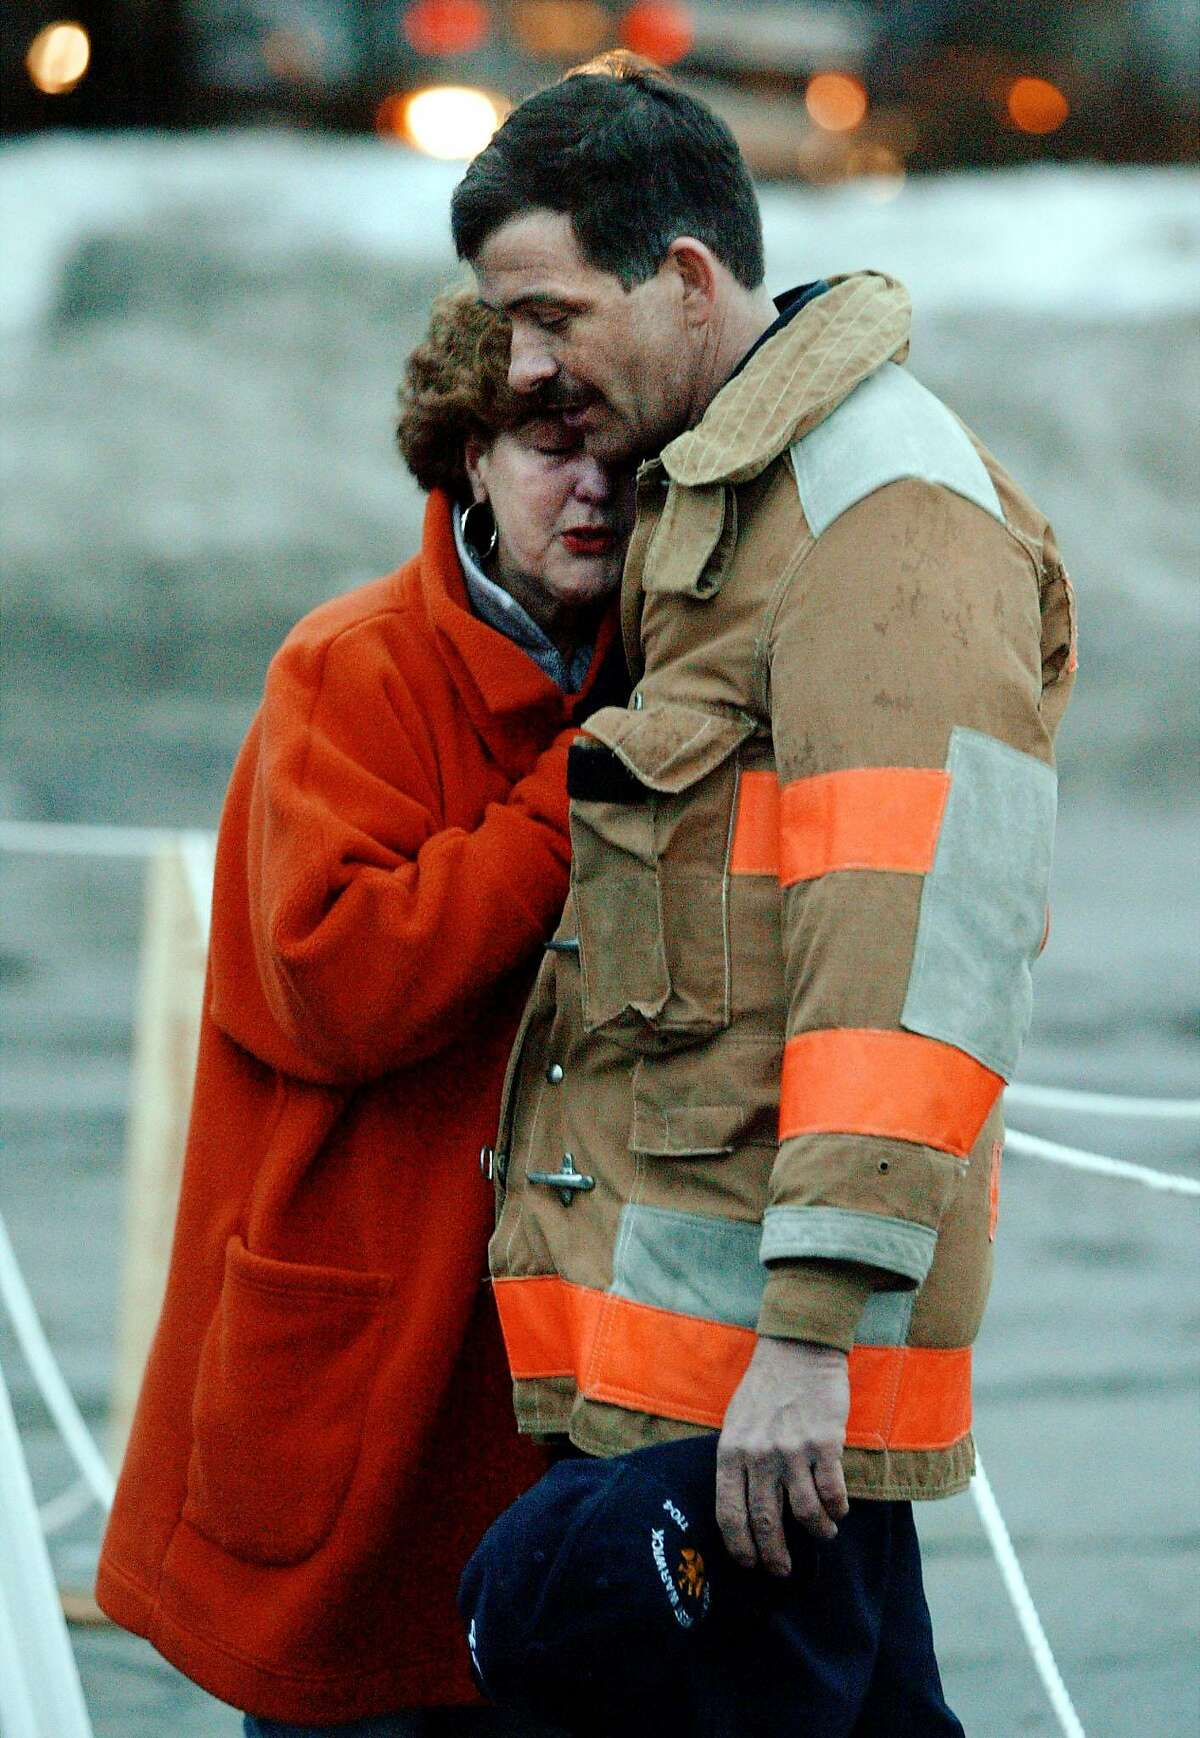 """Sharon Rayche (L) hugs West Warwick Fire Department Battalion Chief Wayne Willette at the site of the deadly February 21 fire at """"The Station"""" night club in Warwick, Rhode Island, February 23, 2003. The fire, which killed at least 96 people and injured at least 187, is believed to have been started when pyrotechnics went off around the band Great White at the begining of their performance. REUTERS/Brian Snyder"""